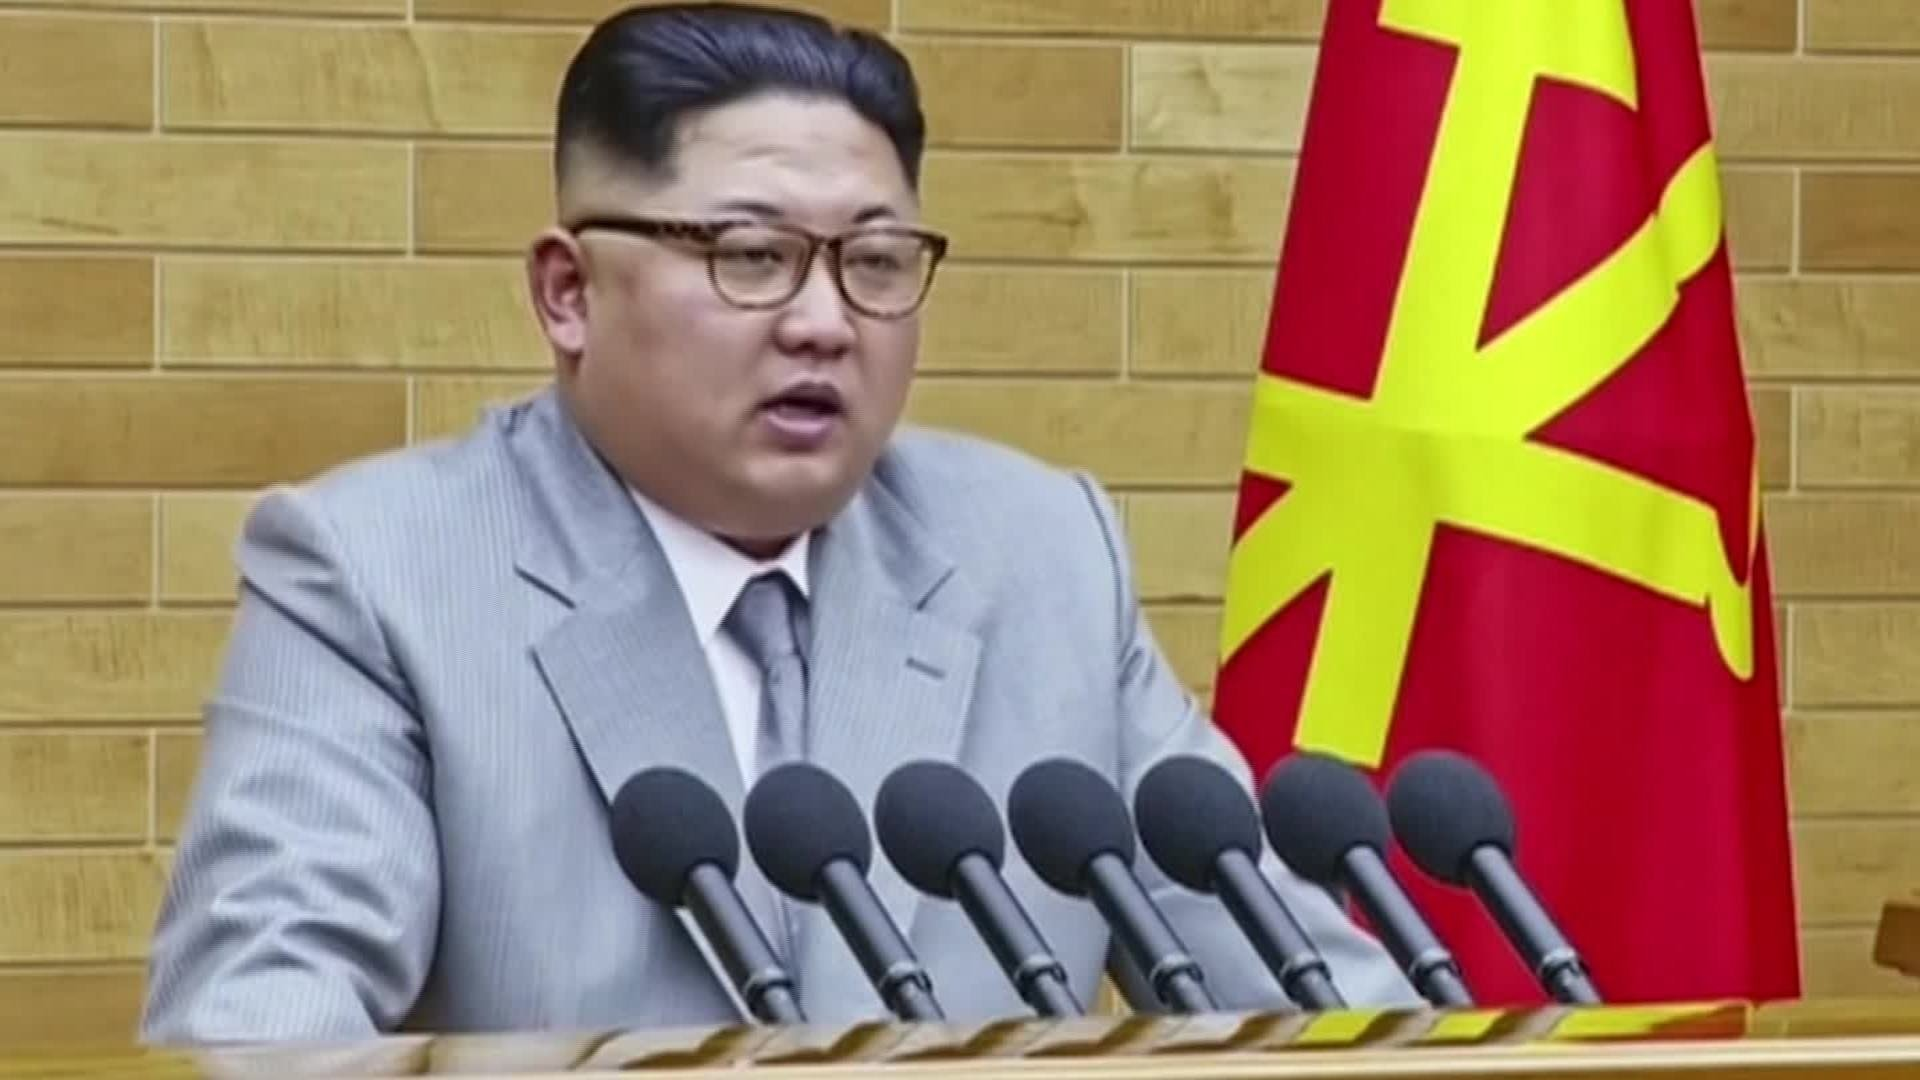 Kim Jong Un is seen here speaking on New Year's Day Address. (File Photo)